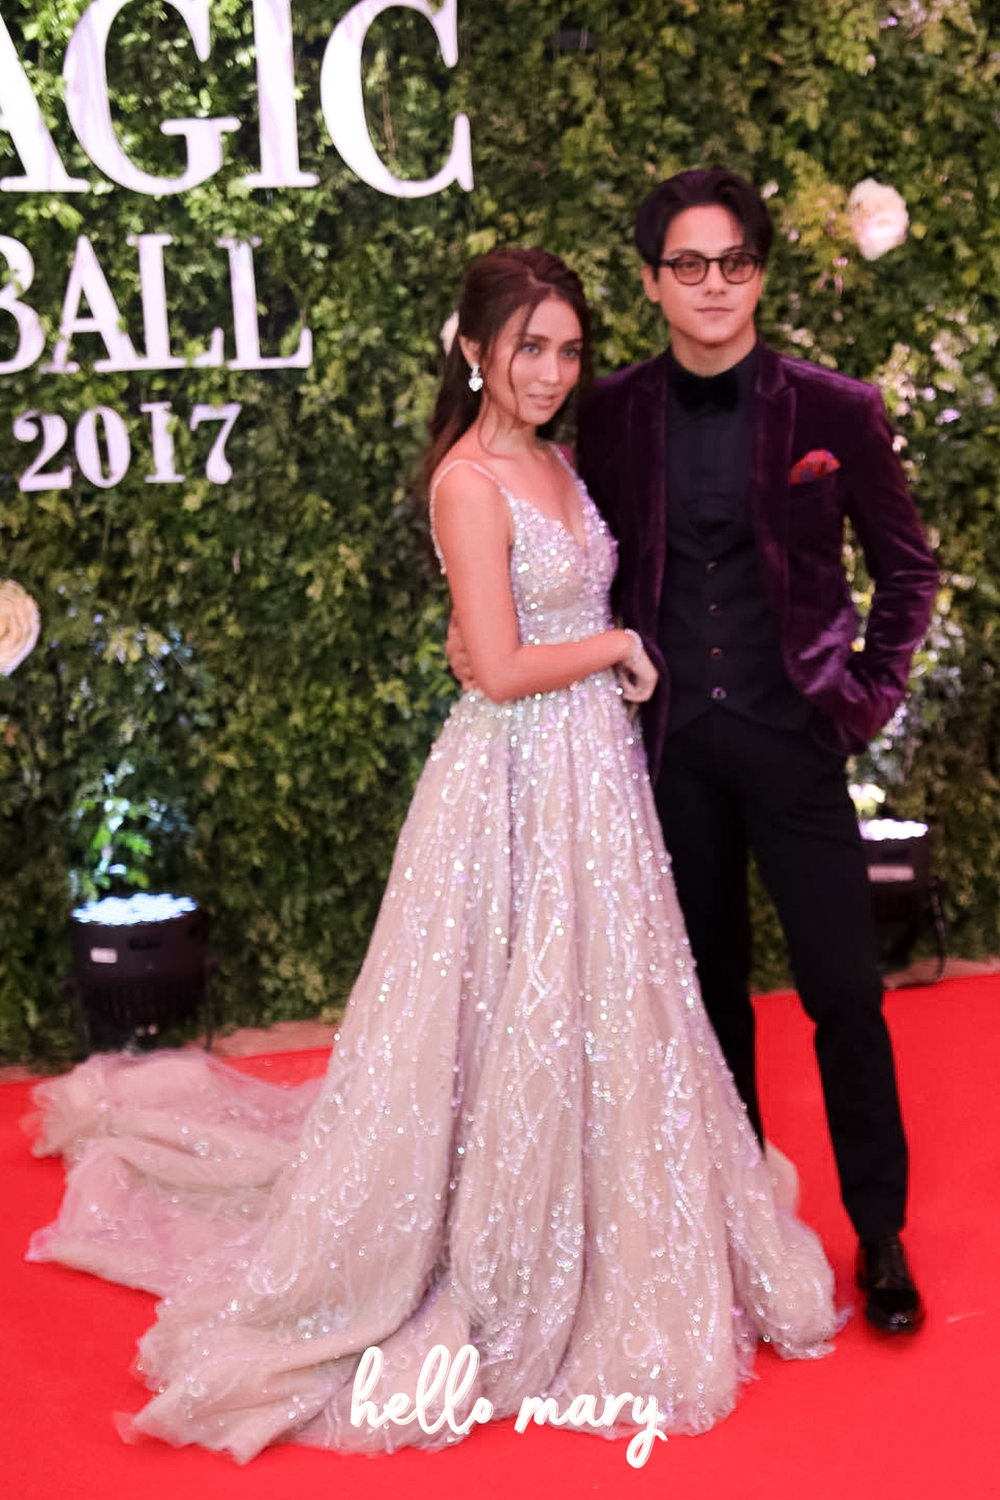 KathNiel - Super loved Kathryn Bernardo and Daniel Padill'as look for this year's ball! Ganda ni Kath and as usual kakaiba nanaman look ni DJ which he can only pull off. Kath won Brightest Star of the Night -- well deserved.